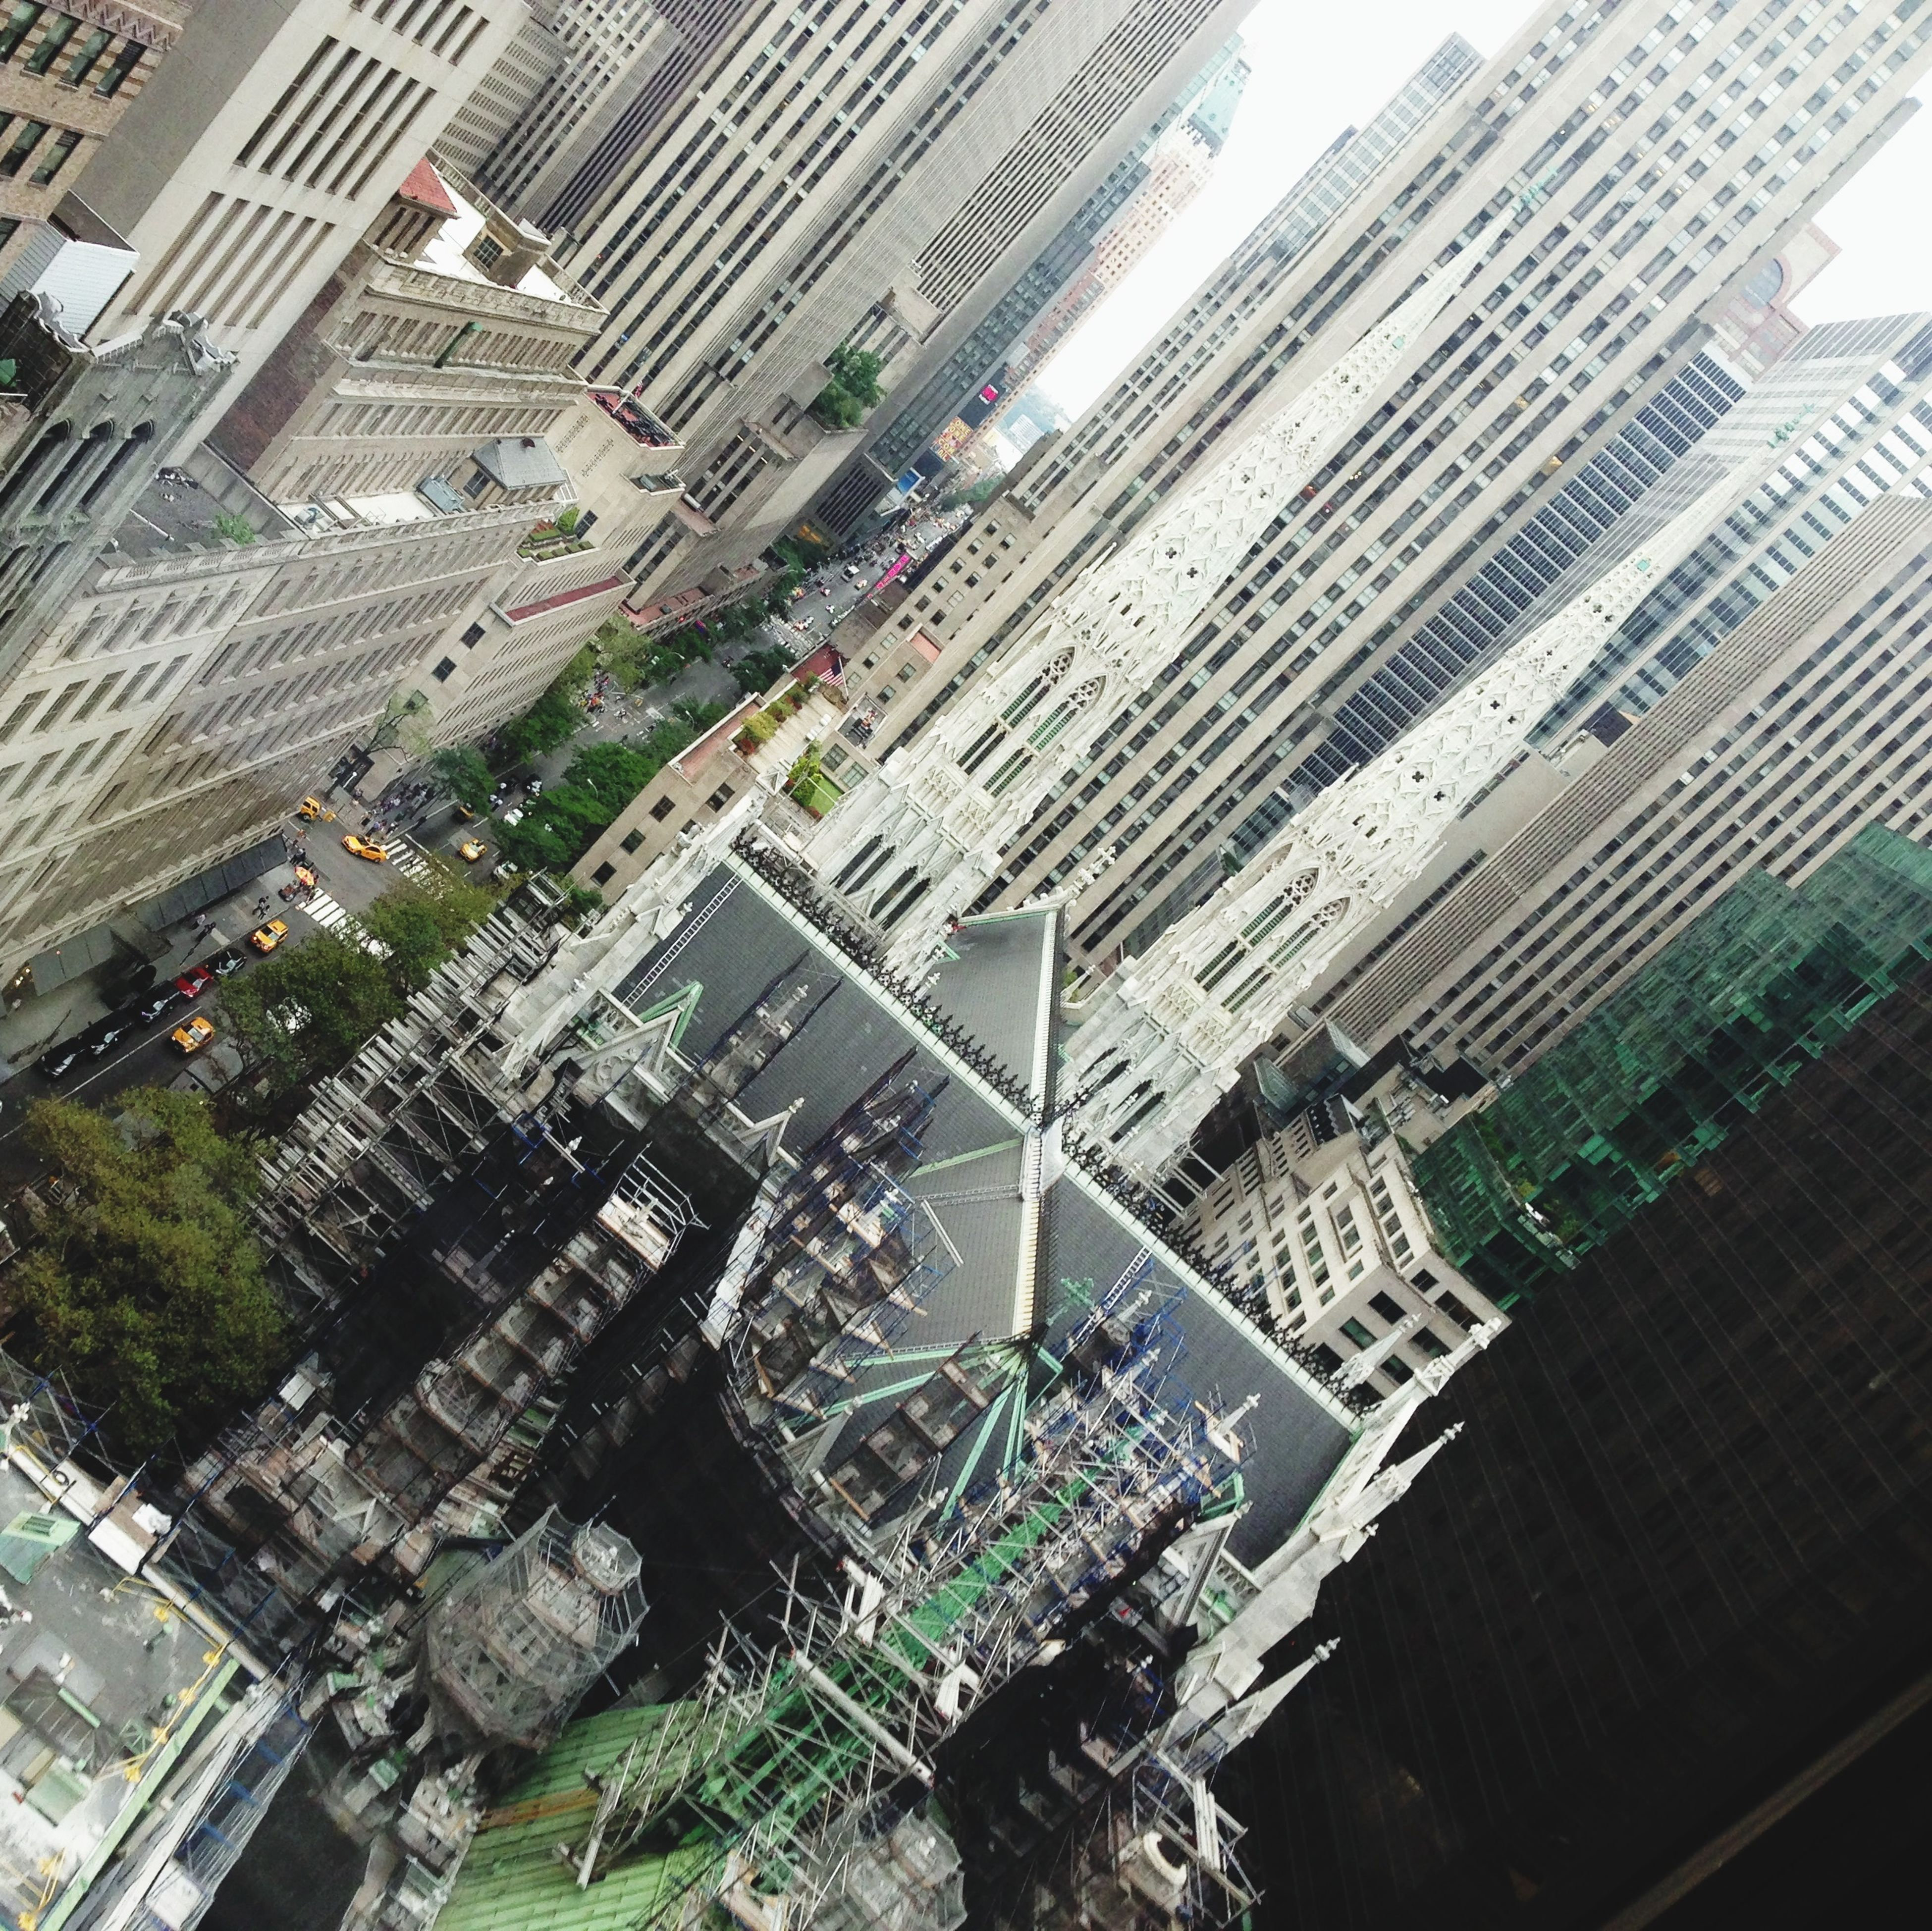 building exterior, architecture, built structure, high angle view, city, residential building, building, cityscape, city life, residential district, residential structure, day, street, incidental people, outdoors, transportation, roof, office building, elevated view, water